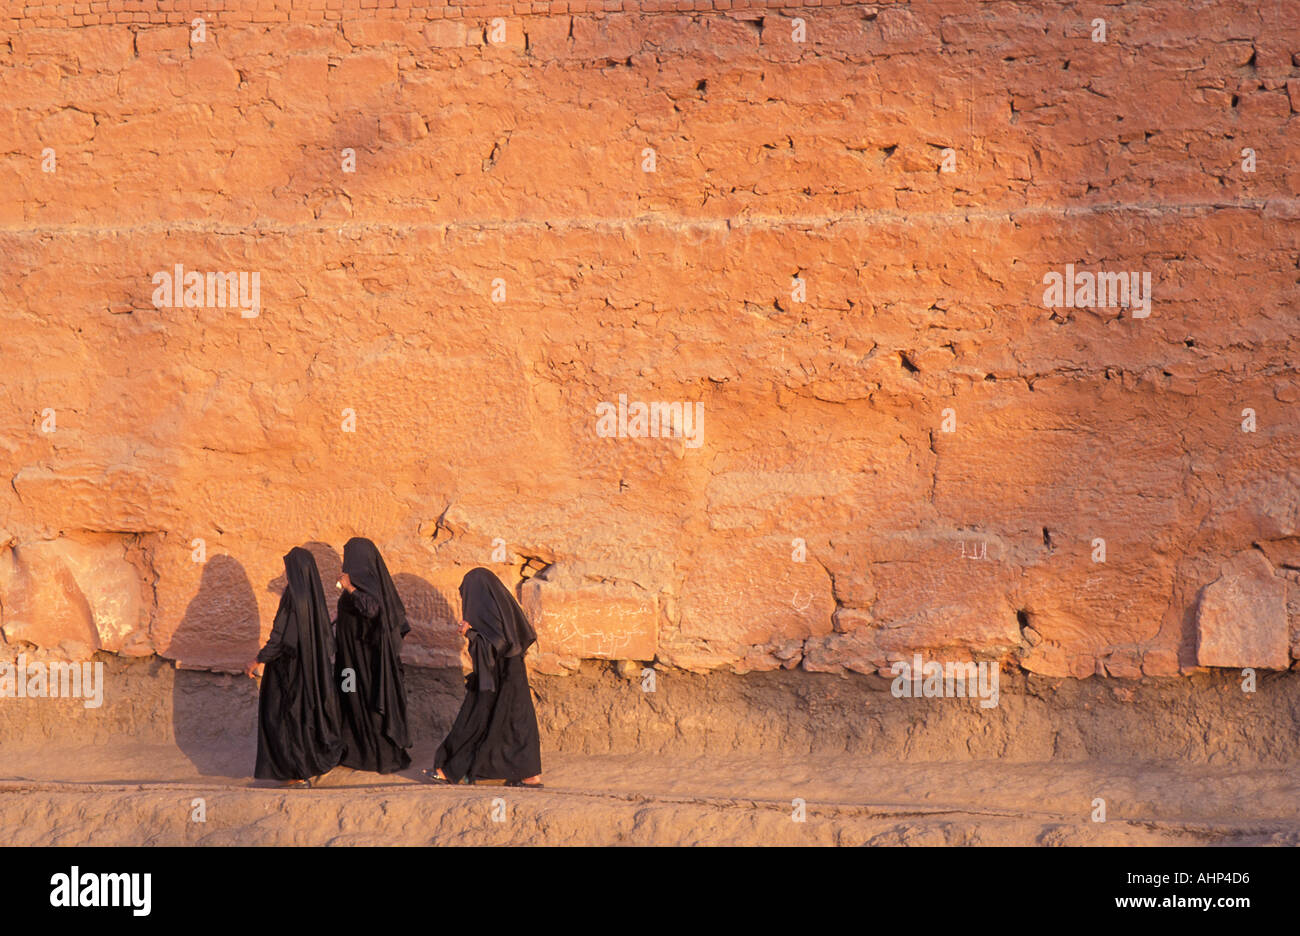 Muslim women robed in black burqas walking along the outer wall path of Karnak Temple Nr Luxor Egypt Photo by Jamie Marshall - Stock Image